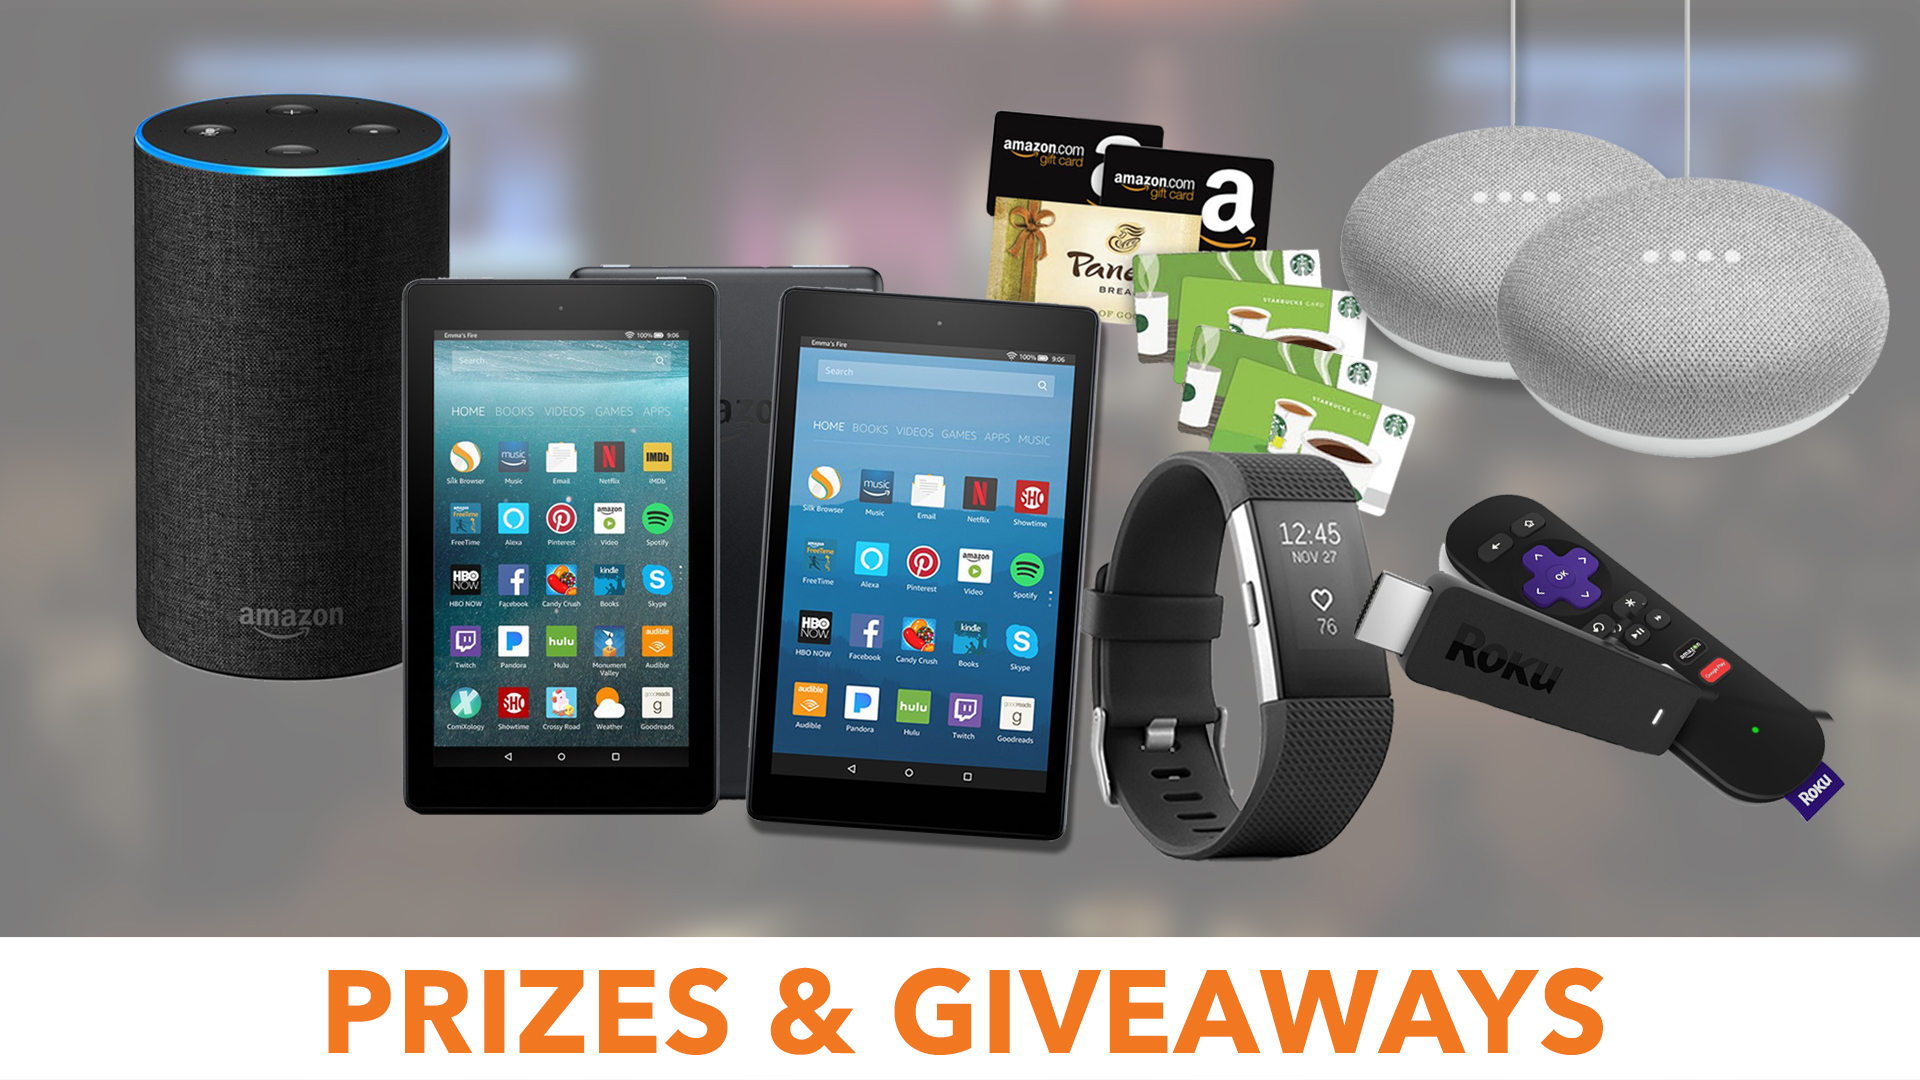 $1000 in prizes and giveaways